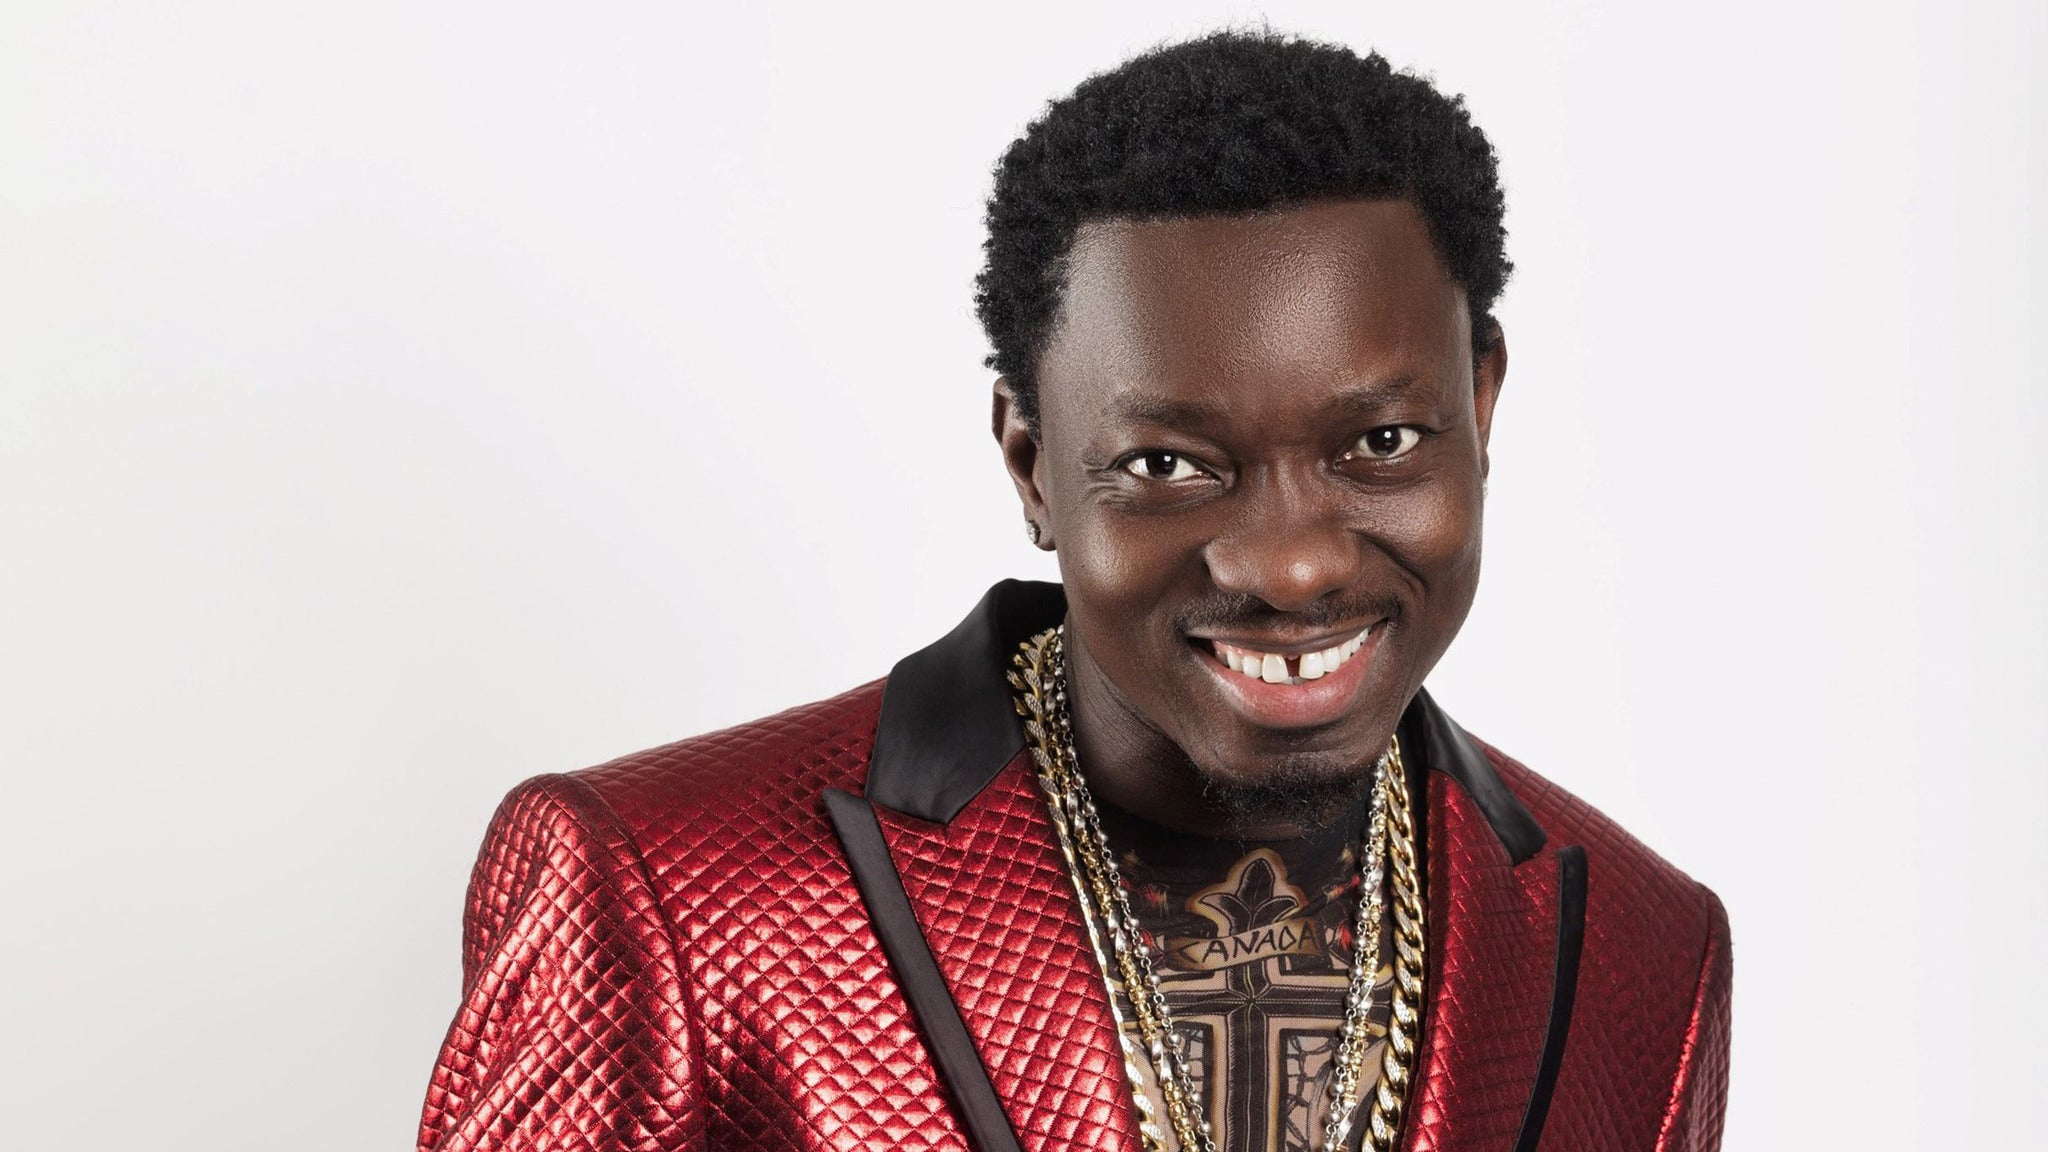 Michael Blackson proposes to girlfriend live on air